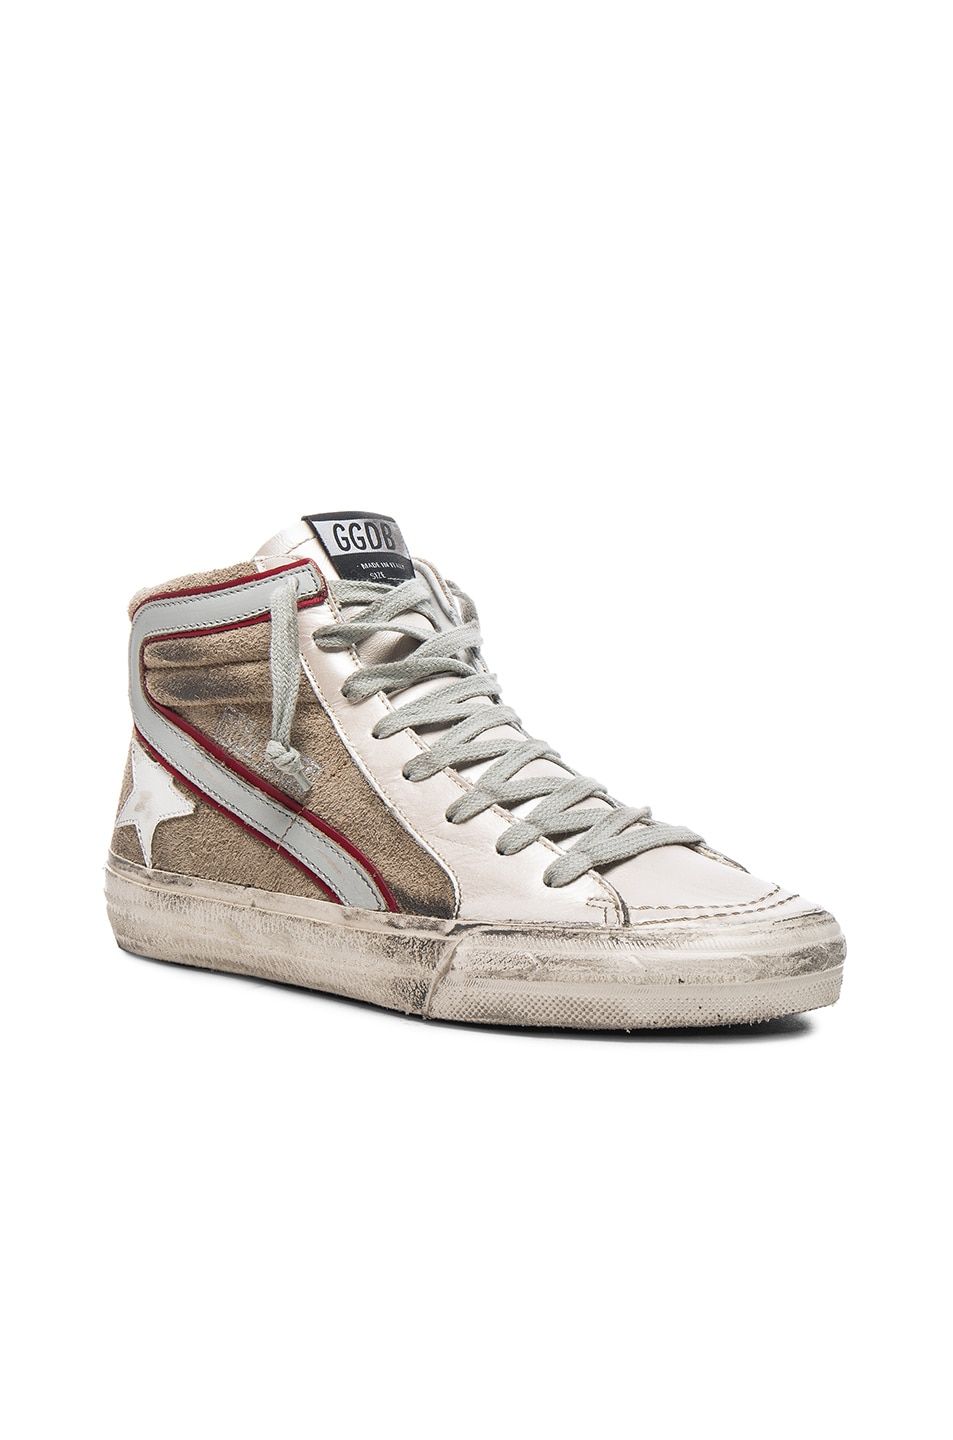 Image 2 of Golden Goose Leather Slide Sneakers in Beige & Silver